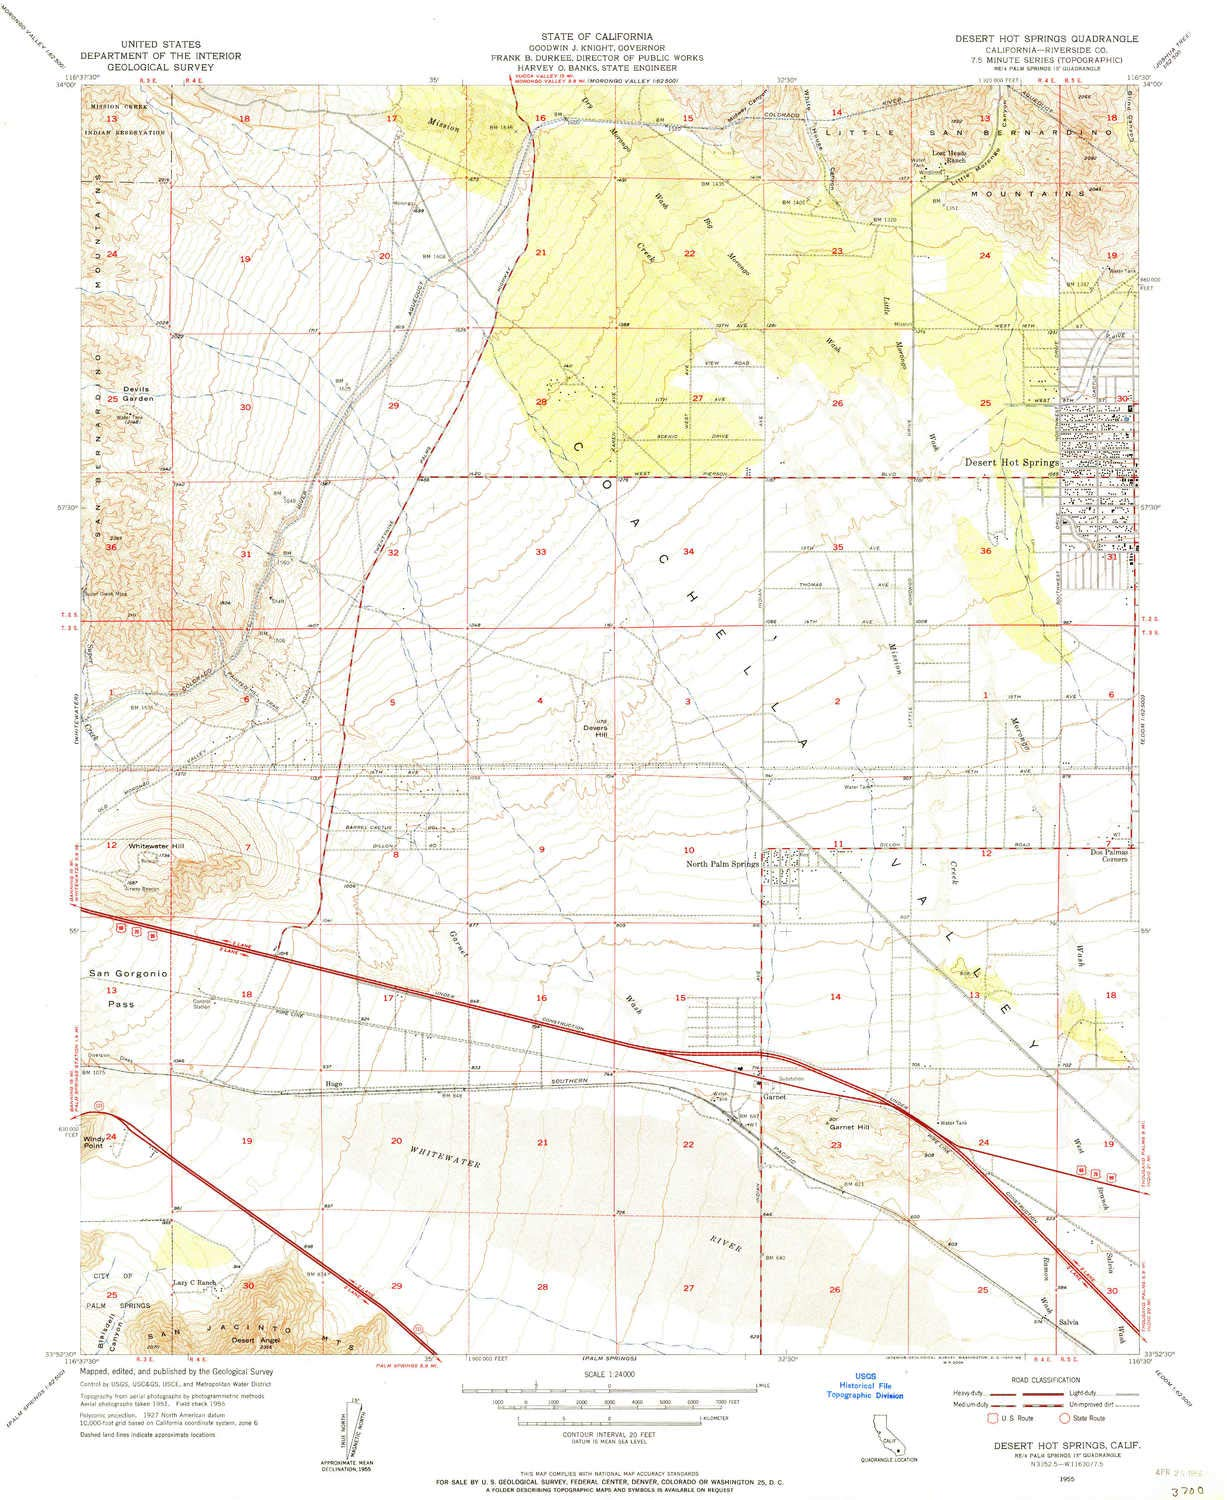 Amazon.com : YellowMaps Desert Hot Springs CA topo map, 1 ... on map of north palm beach county, map of spring valley, map of tarpon springs fl, map of thermal, map of royal palm beach, map of w palm beach, map of sun city palm desert, map of the inland empire, map of laytonville, map of las vegas, map of highland, map of the greenbrier, map of silver spring, map of steamboat springs colorado, map of thousand palms, map of eureka springs arkansas, map of west palm, map of seattle area, map of cancún, map of topanga,